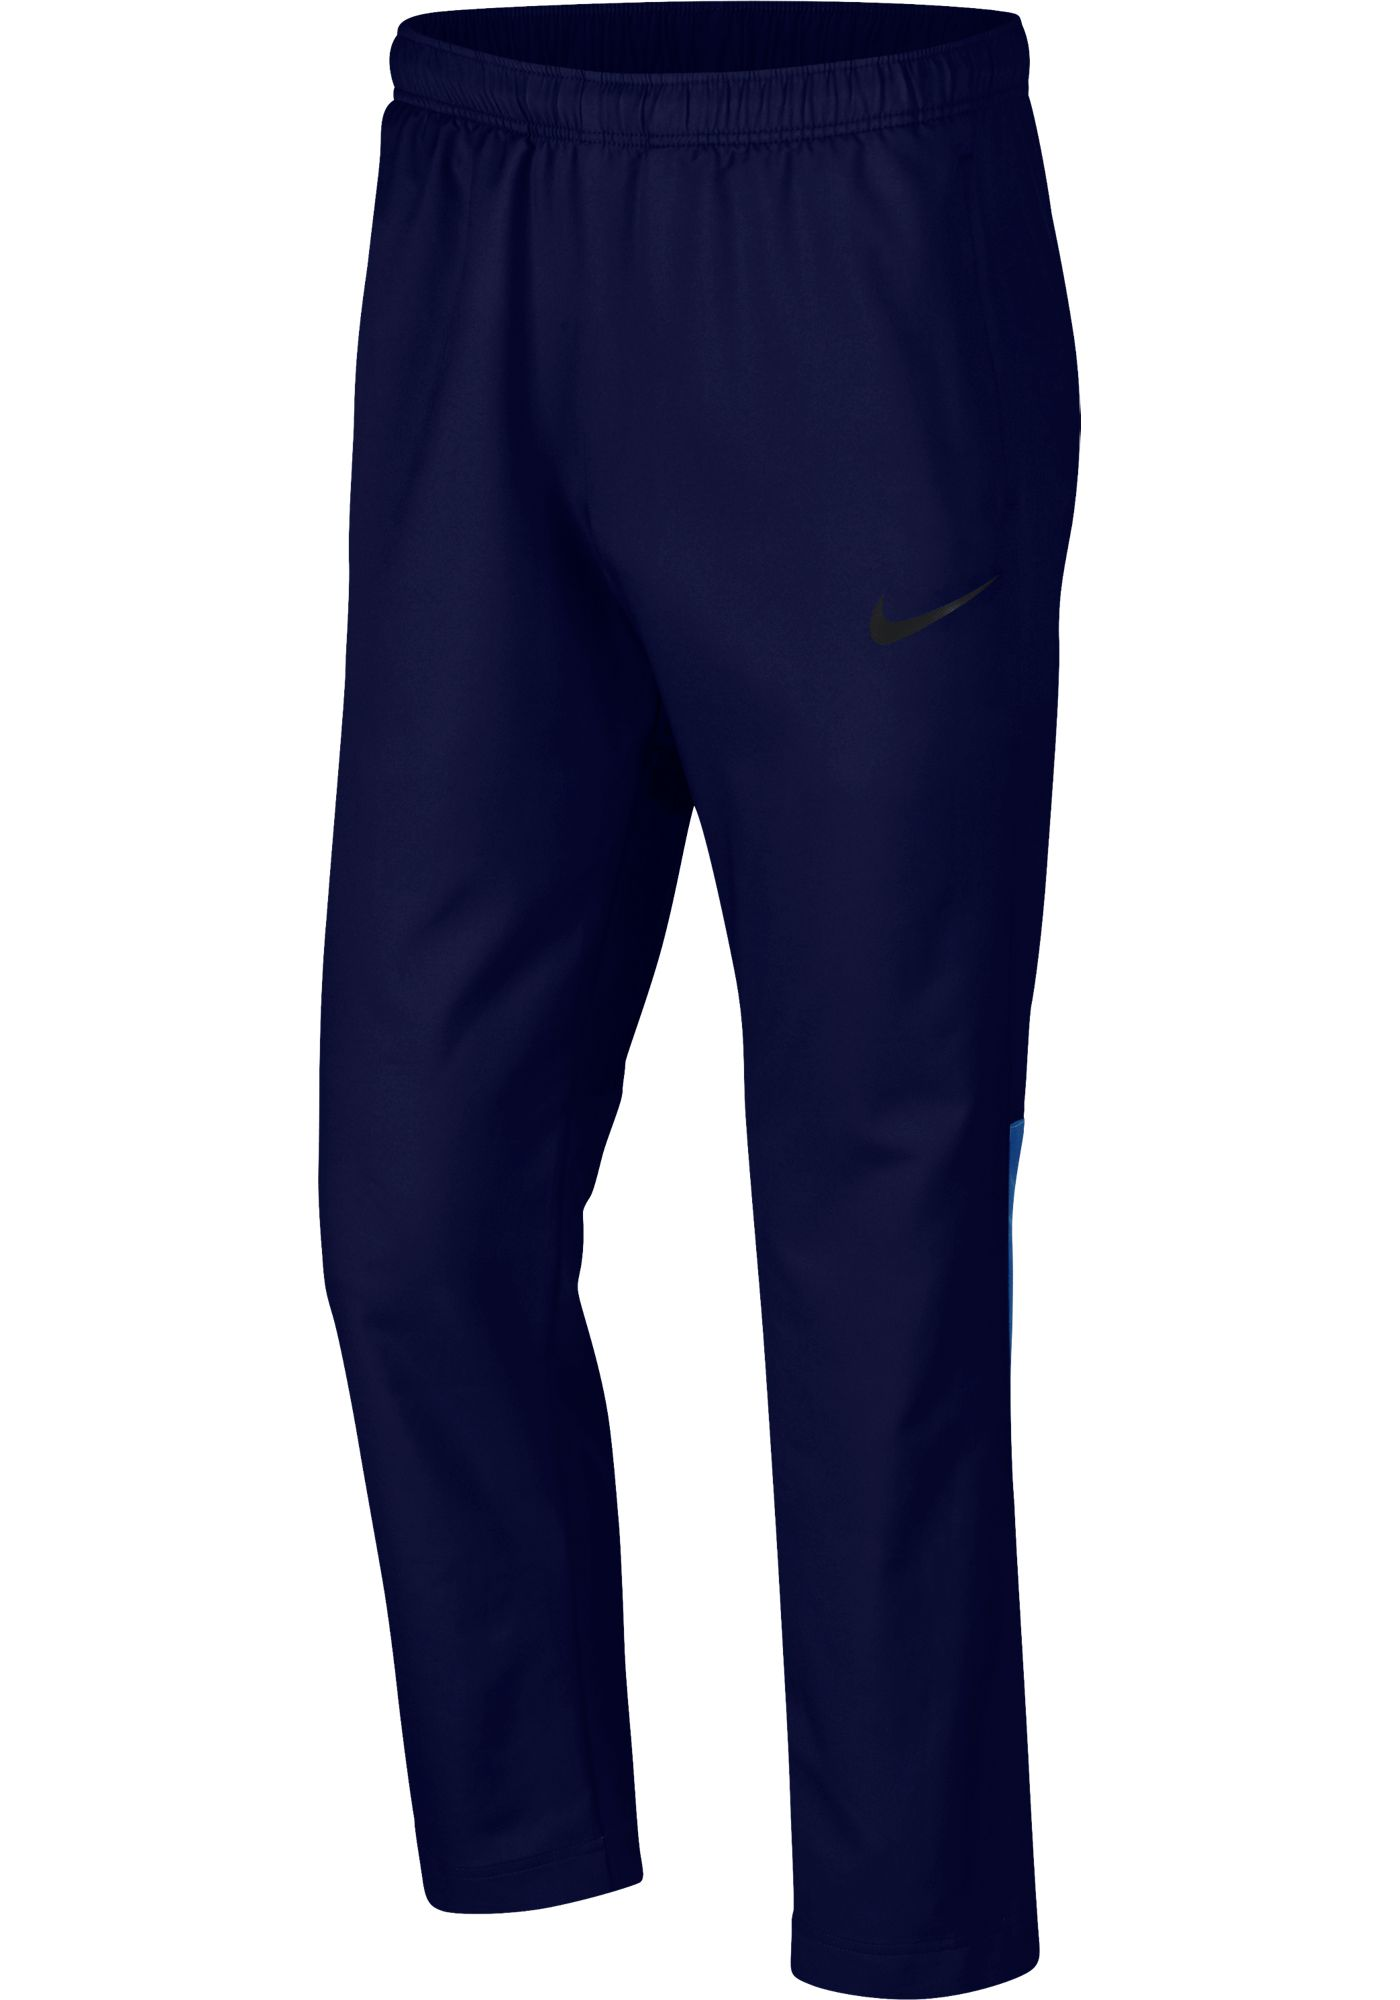 Nike Men's Dry Woven Team Training Pants (Regular and Big & Tall)